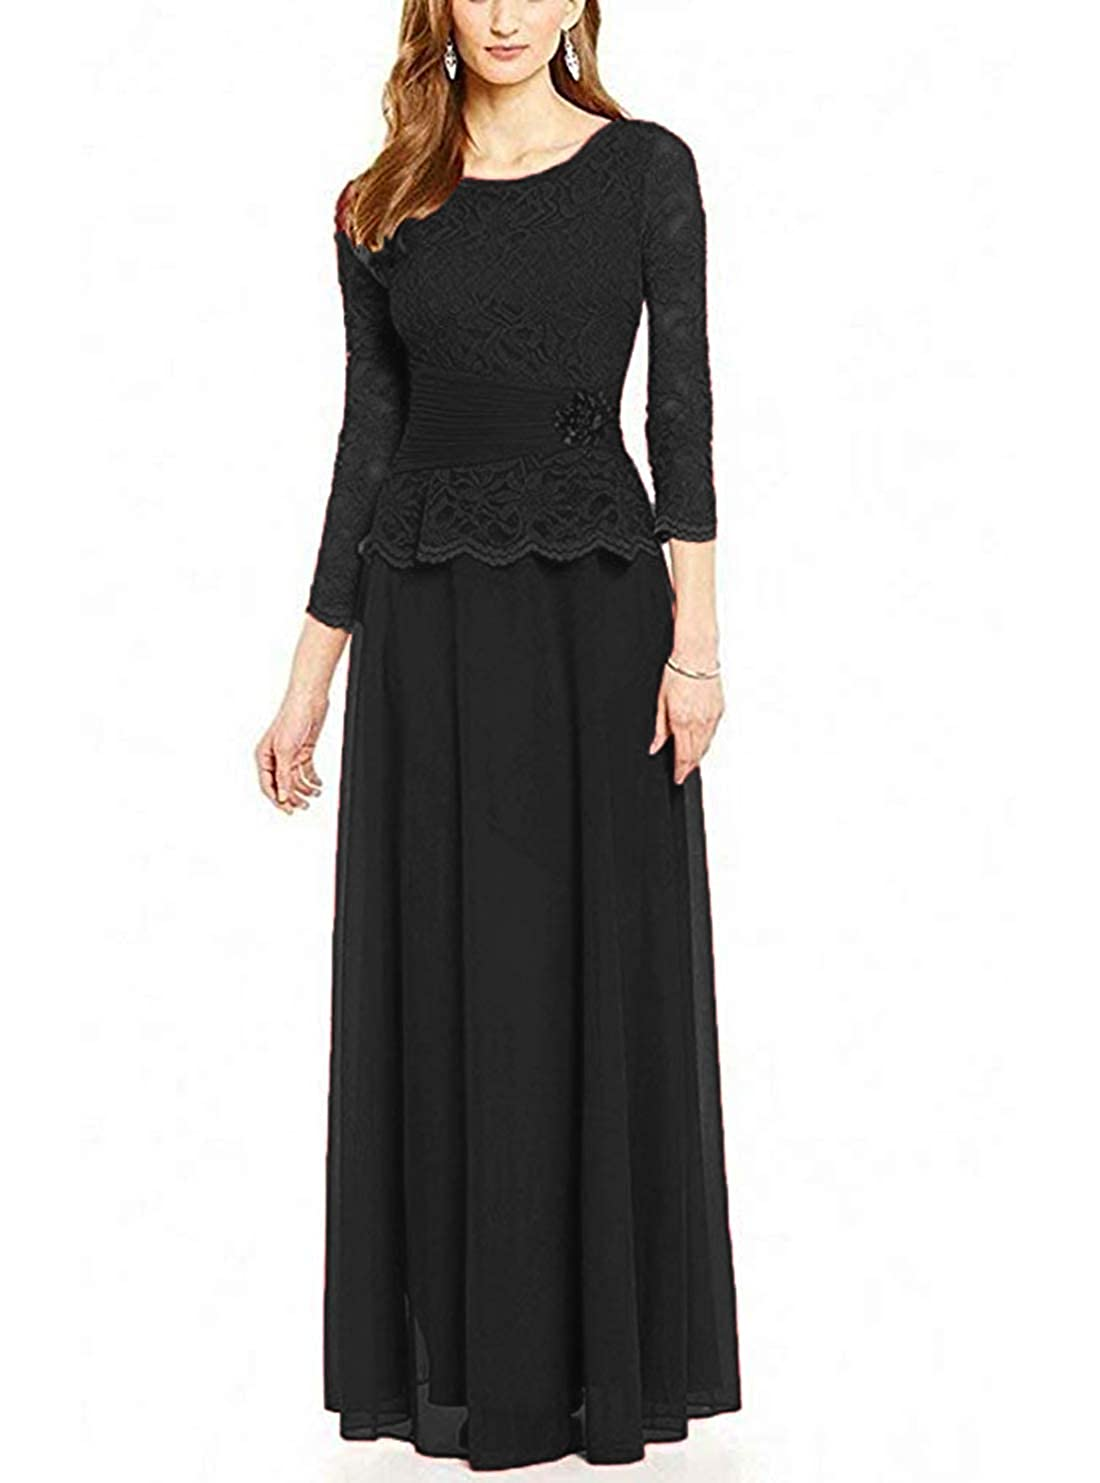 a87b57505711 Black Evening Dress With 3 4 Sleeves - raveitsafe